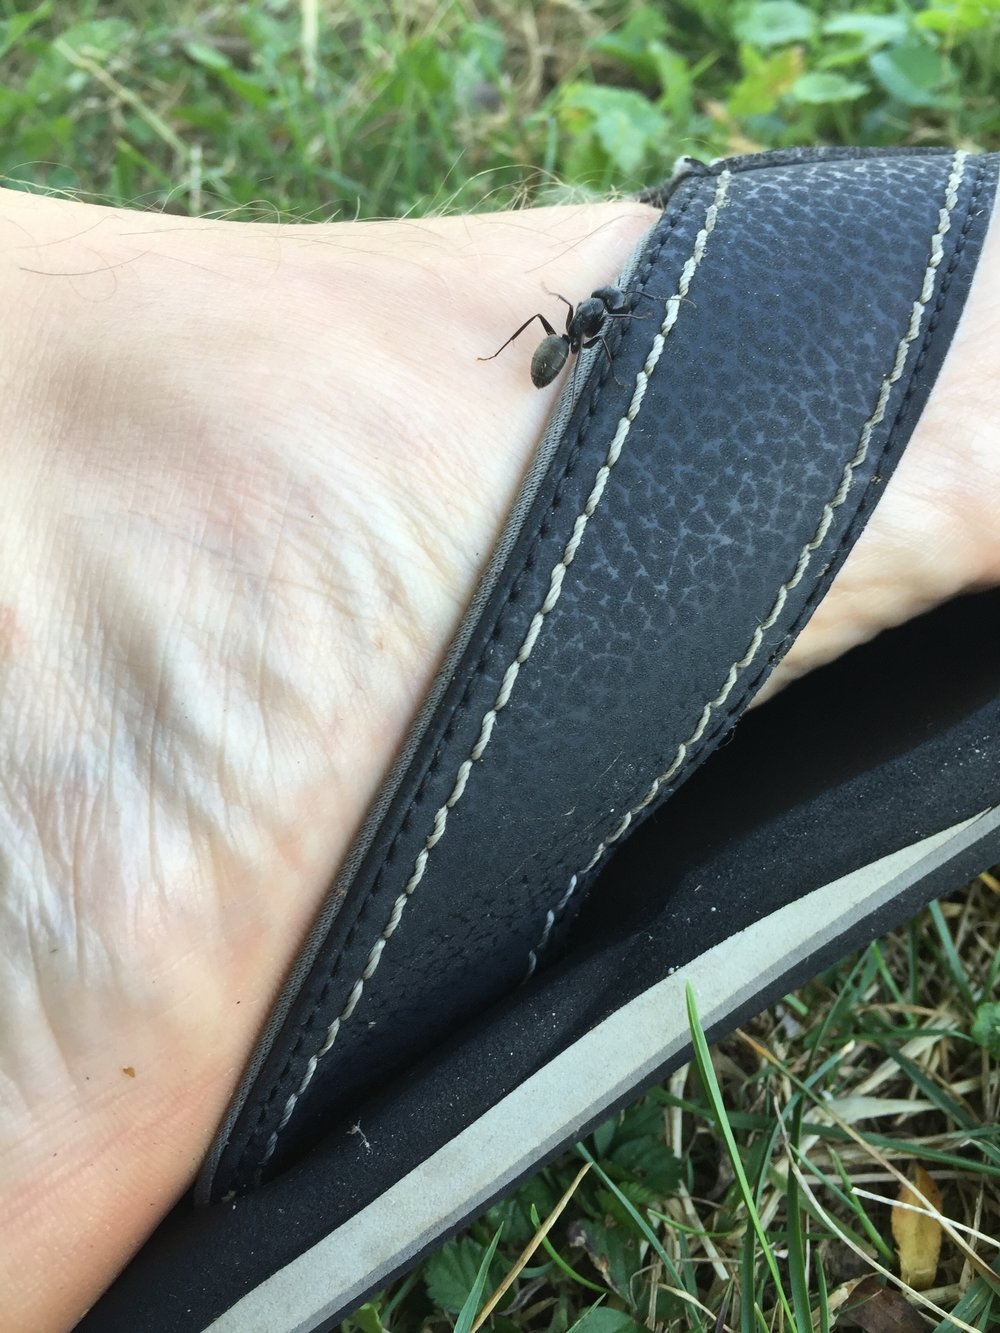 By far, the most populous insect on the ground are ants, so far as I can see. Everywhere I sit to pray, there are always ants criss-crossing before (and sometimes on) me.